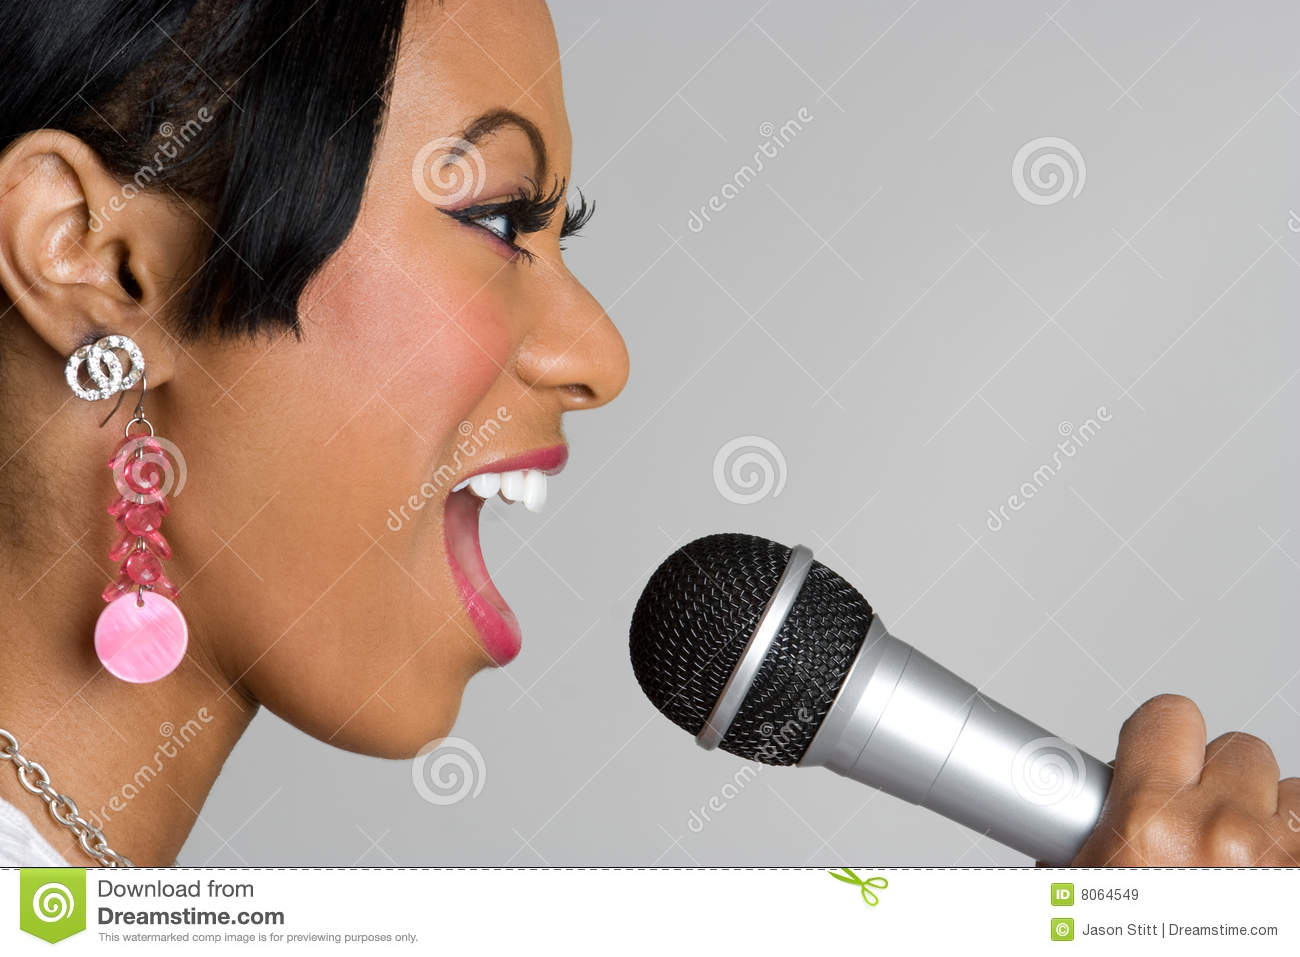 Blackwomen girl singing with